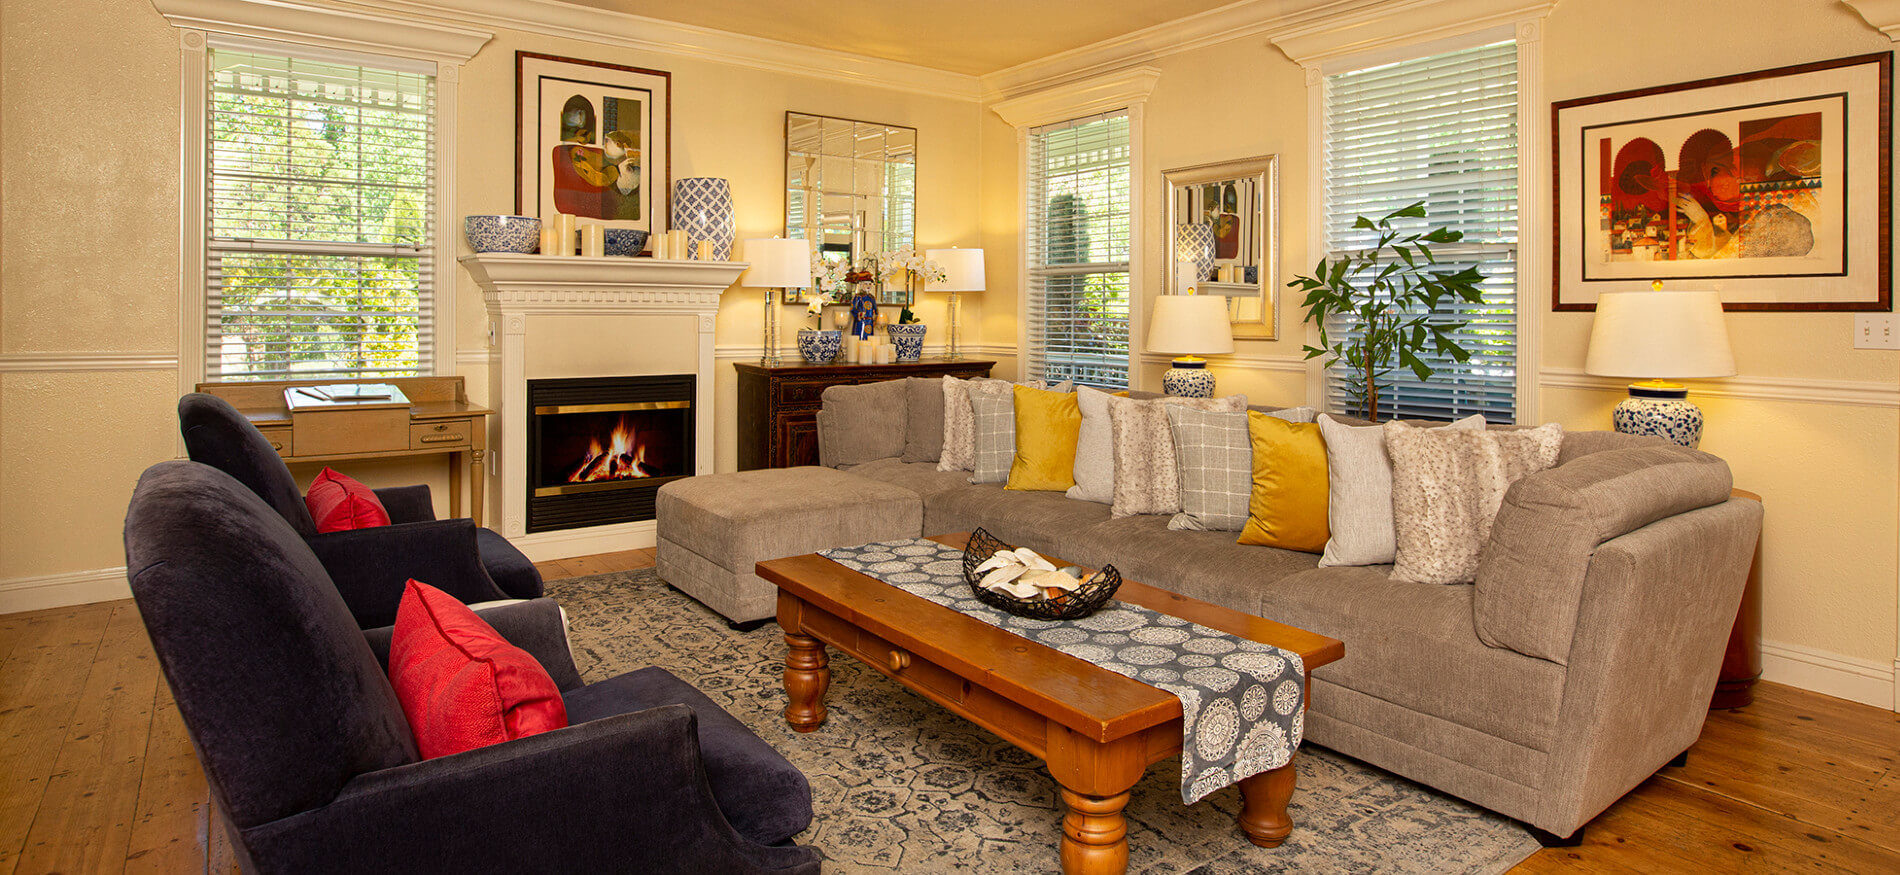 tan couch with ottoman in front of window, coffee table with runner,2 chairs, fireplace, lamps on stands